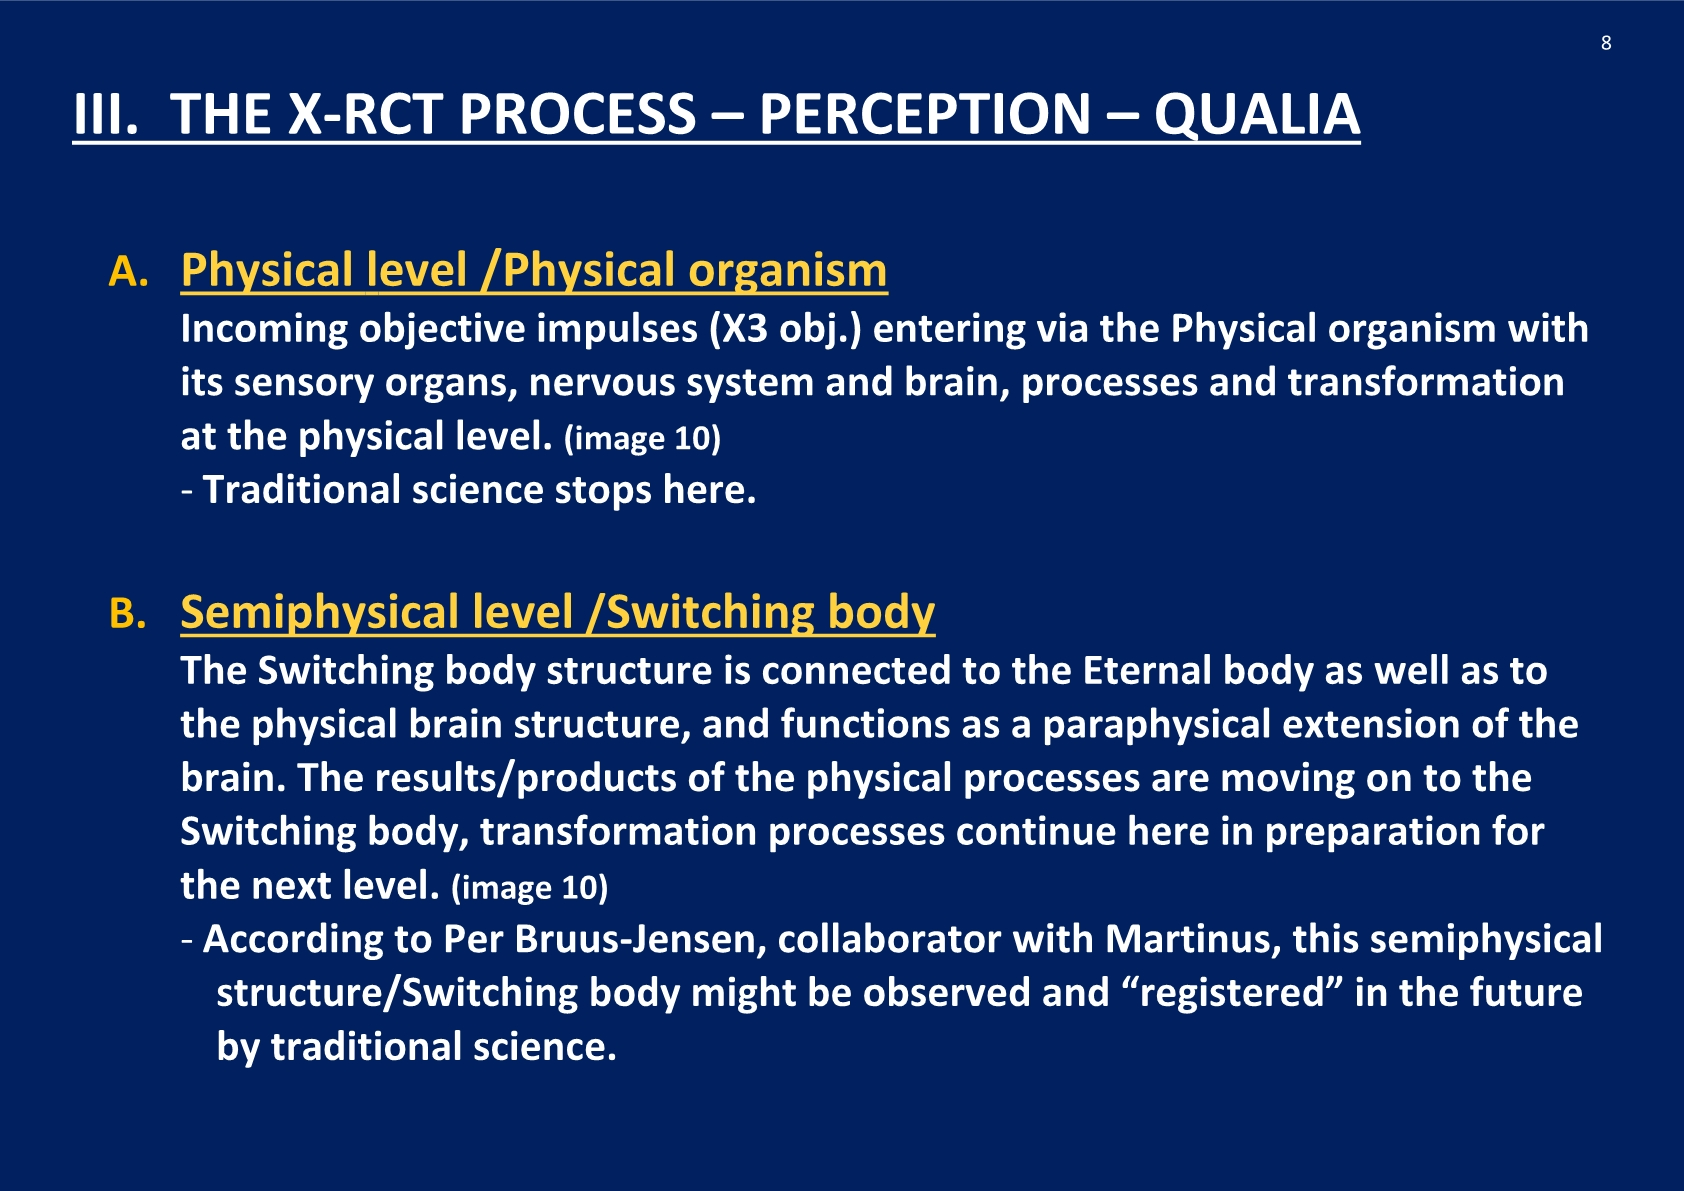 The X-RCT Process- Perception- Qualia, NCP X-AIONS